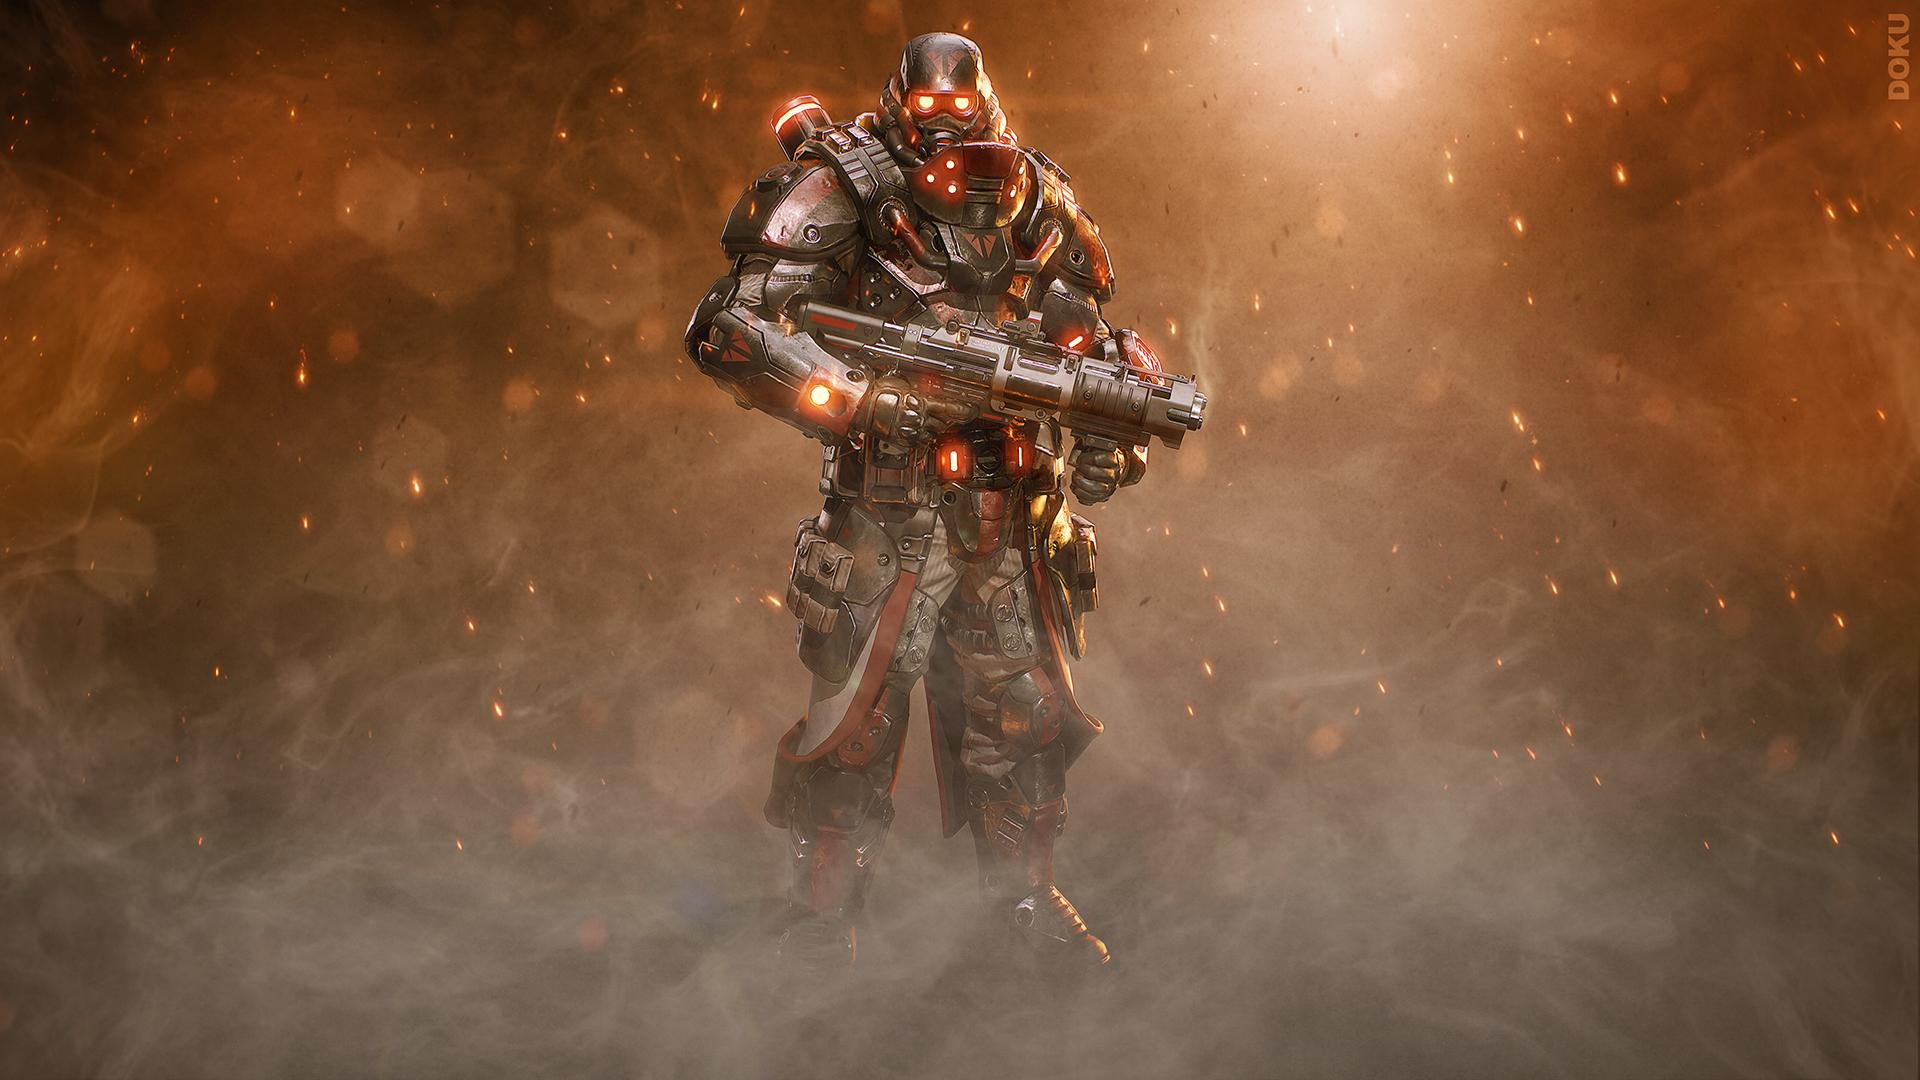 1920x1080 - Firestorm Wallpapers 19